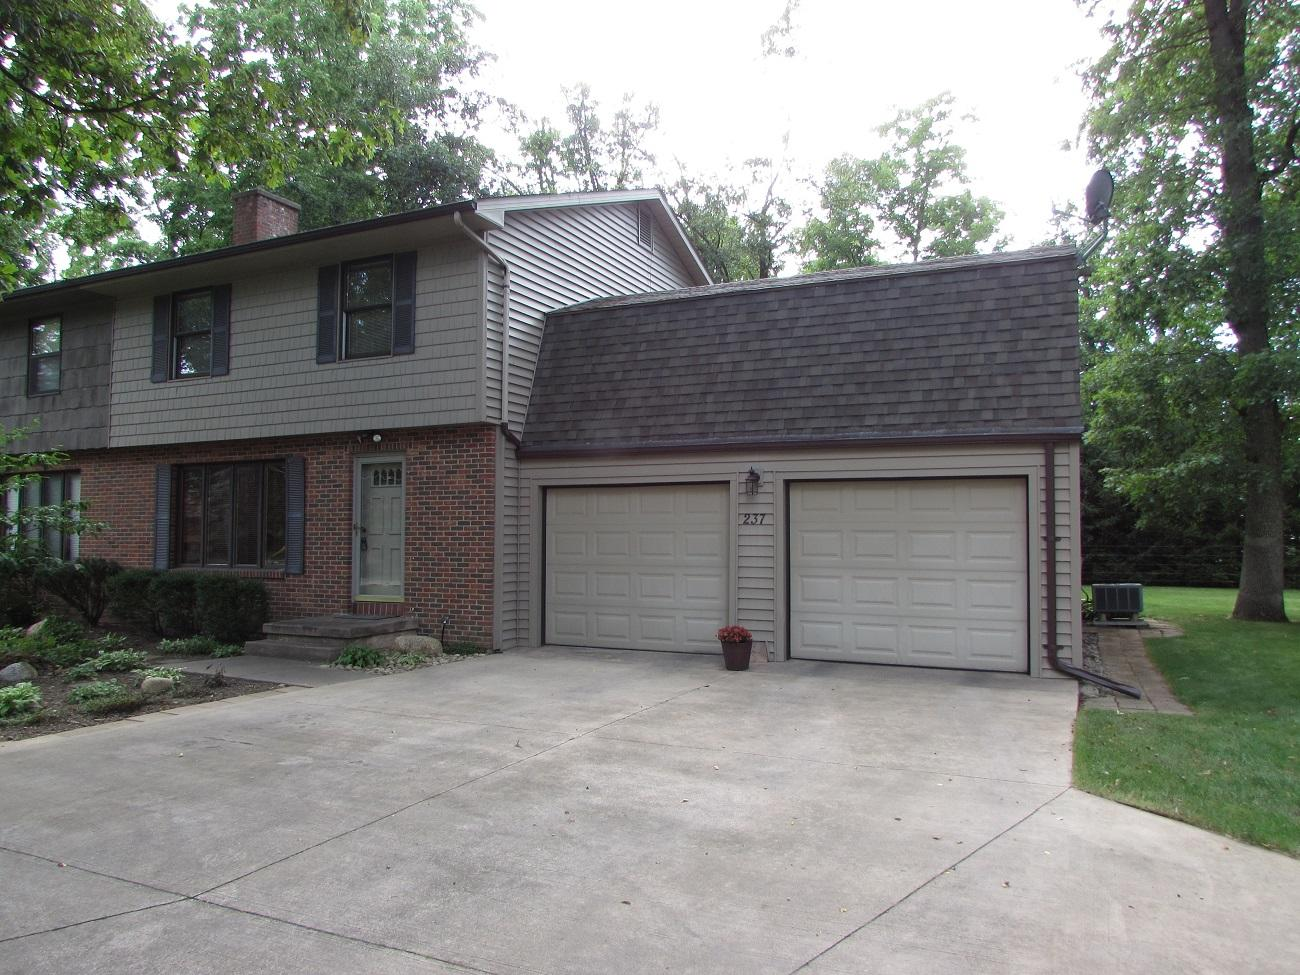 237 Oak Drive Drive Property Photo - Bellefontaine, OH real estate listing